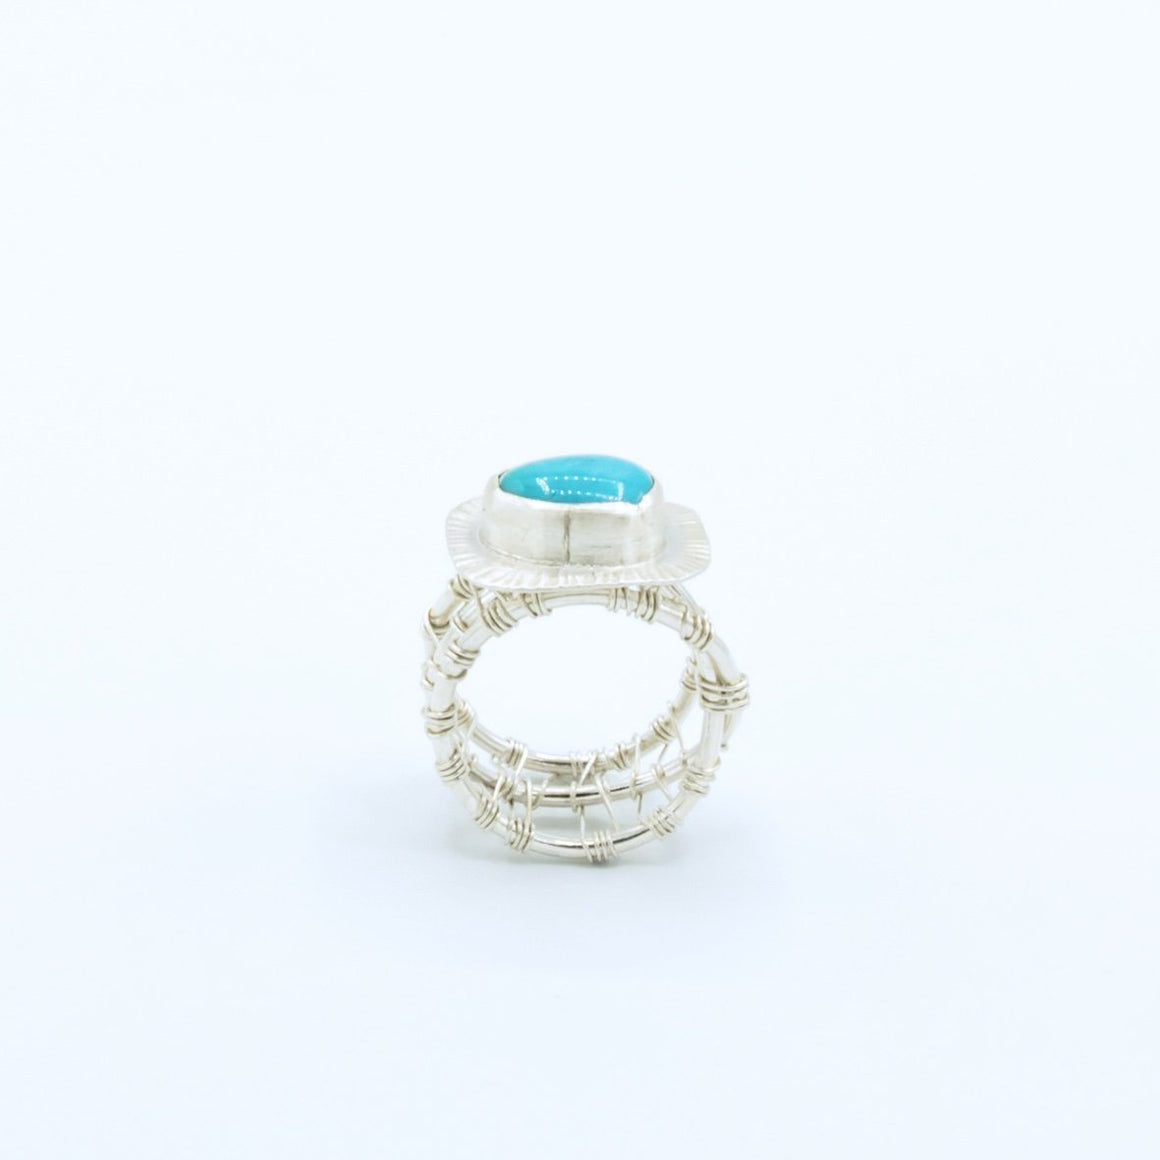 Blair - Royston Turquoise Woven Nest Ring - Original Sin Jewelry